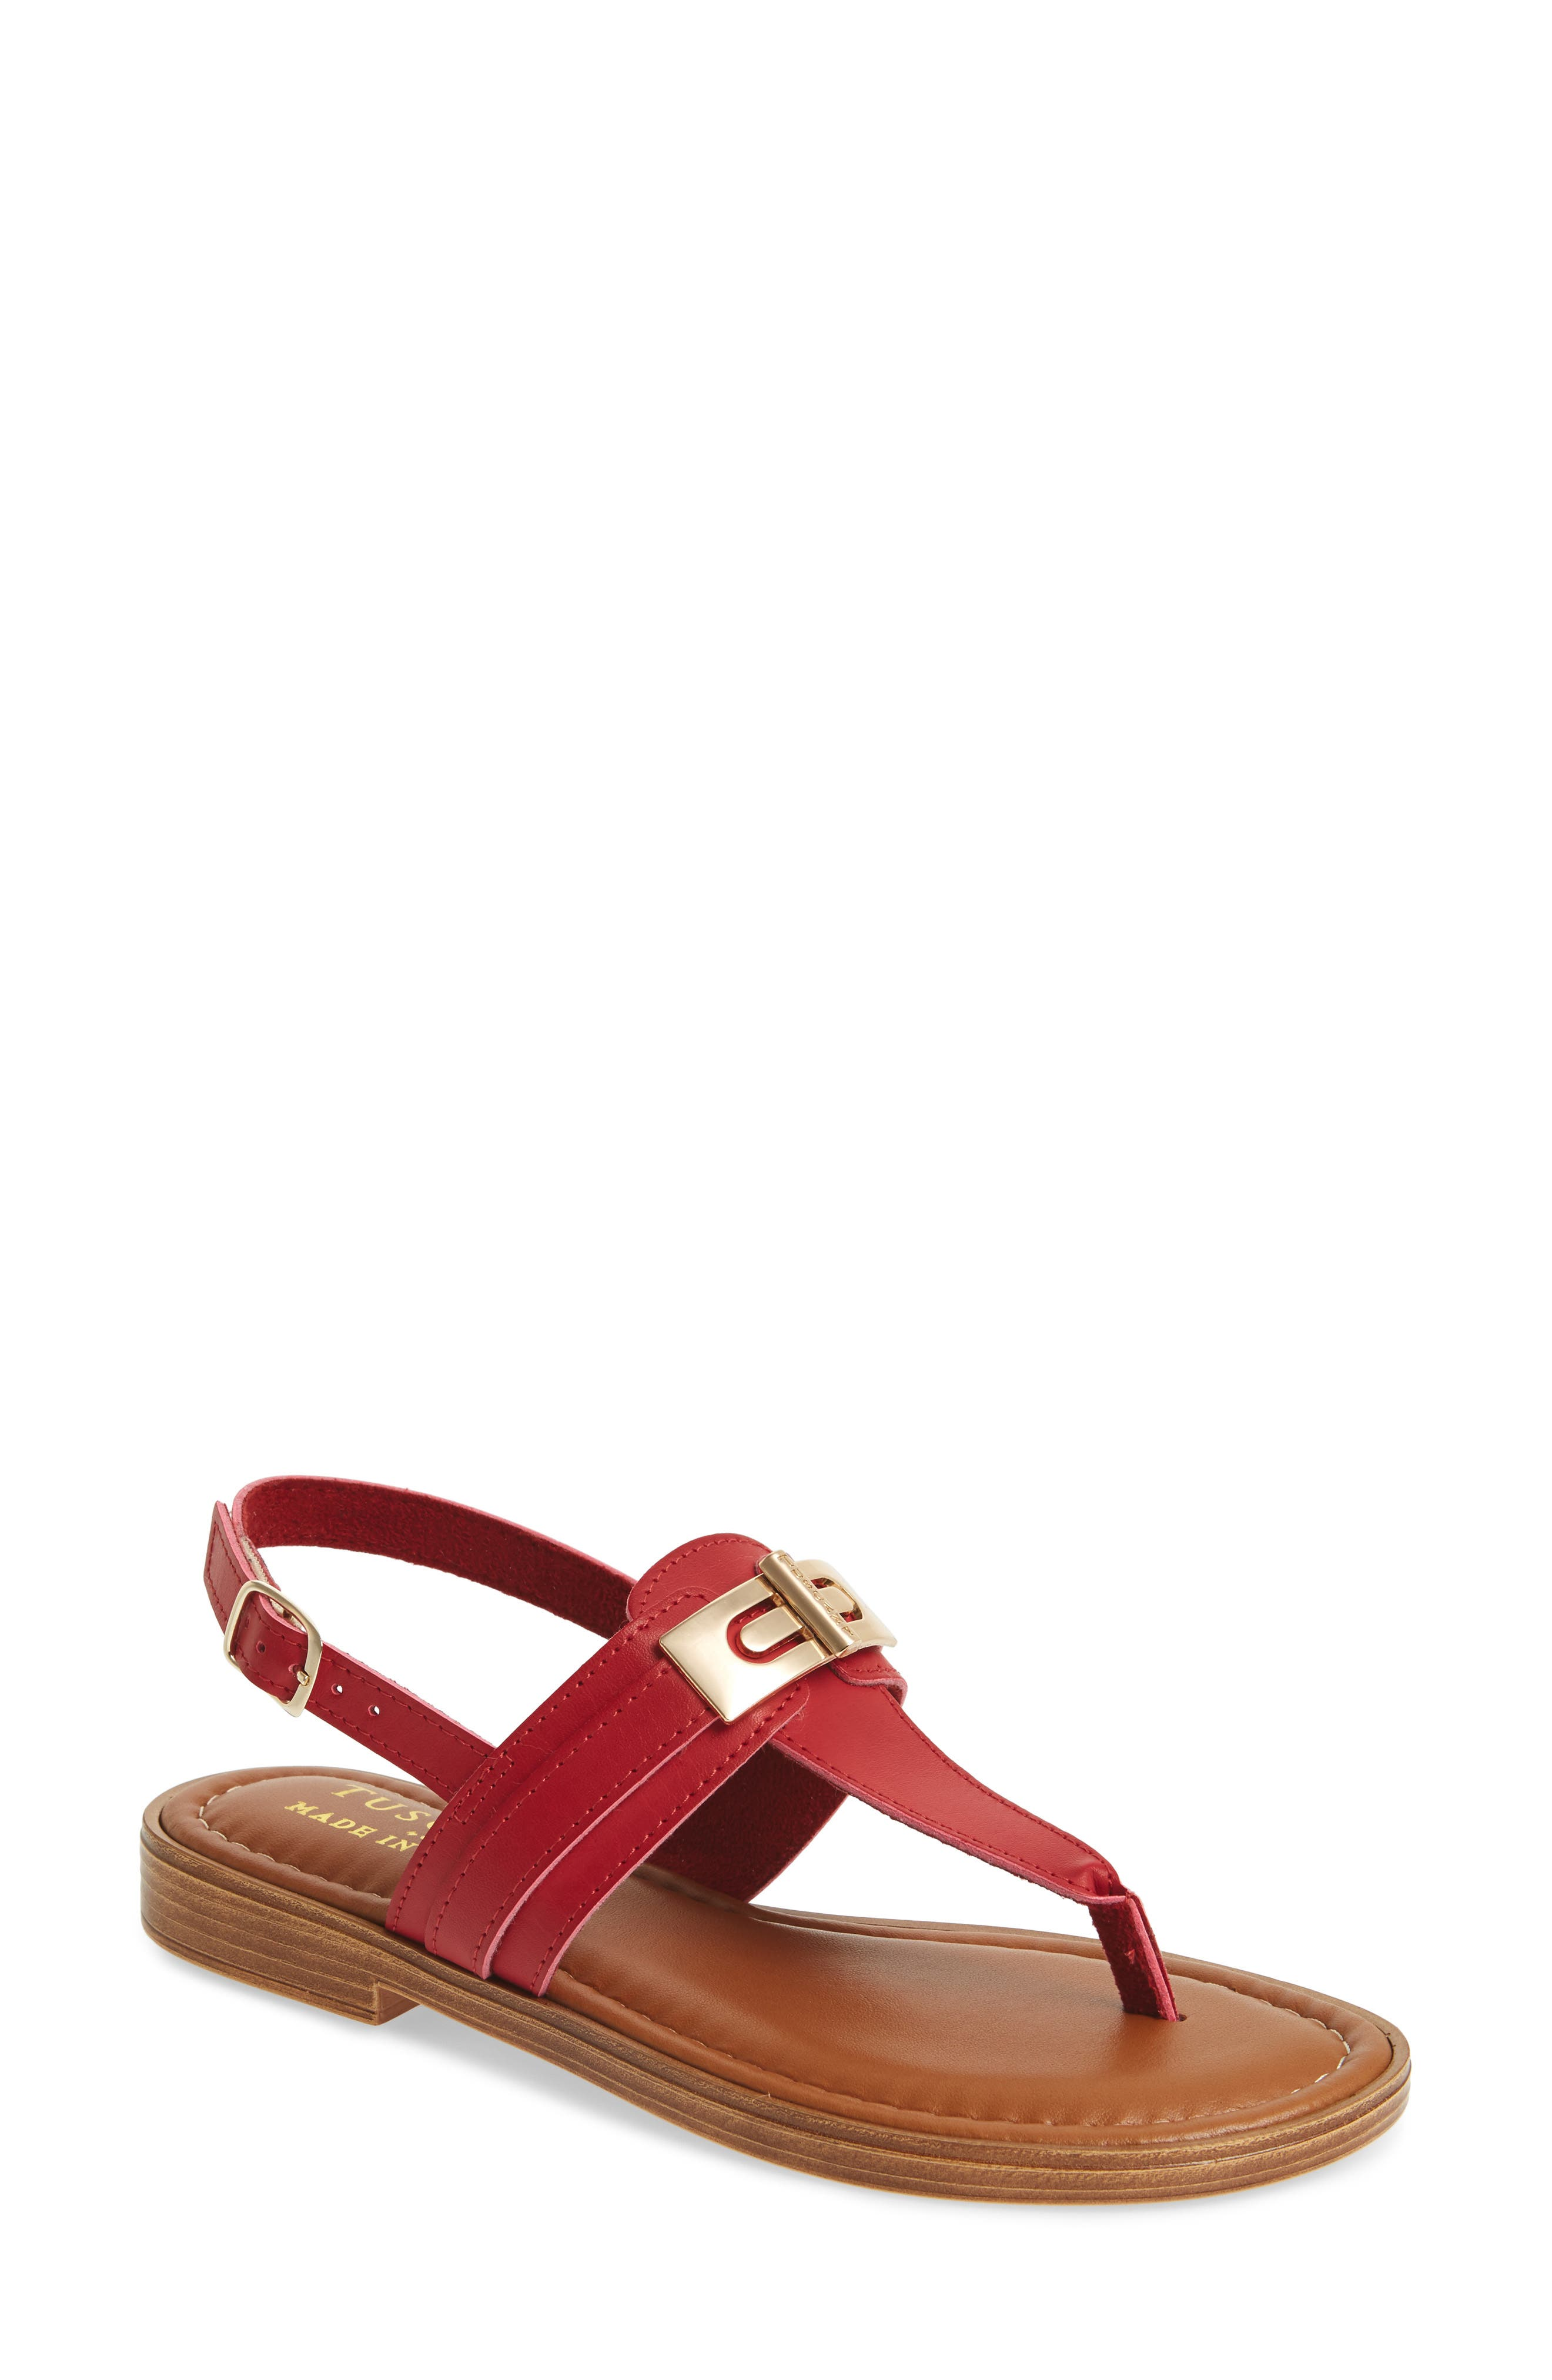 Tuscany By Easy Street Clariss Sandal- Red